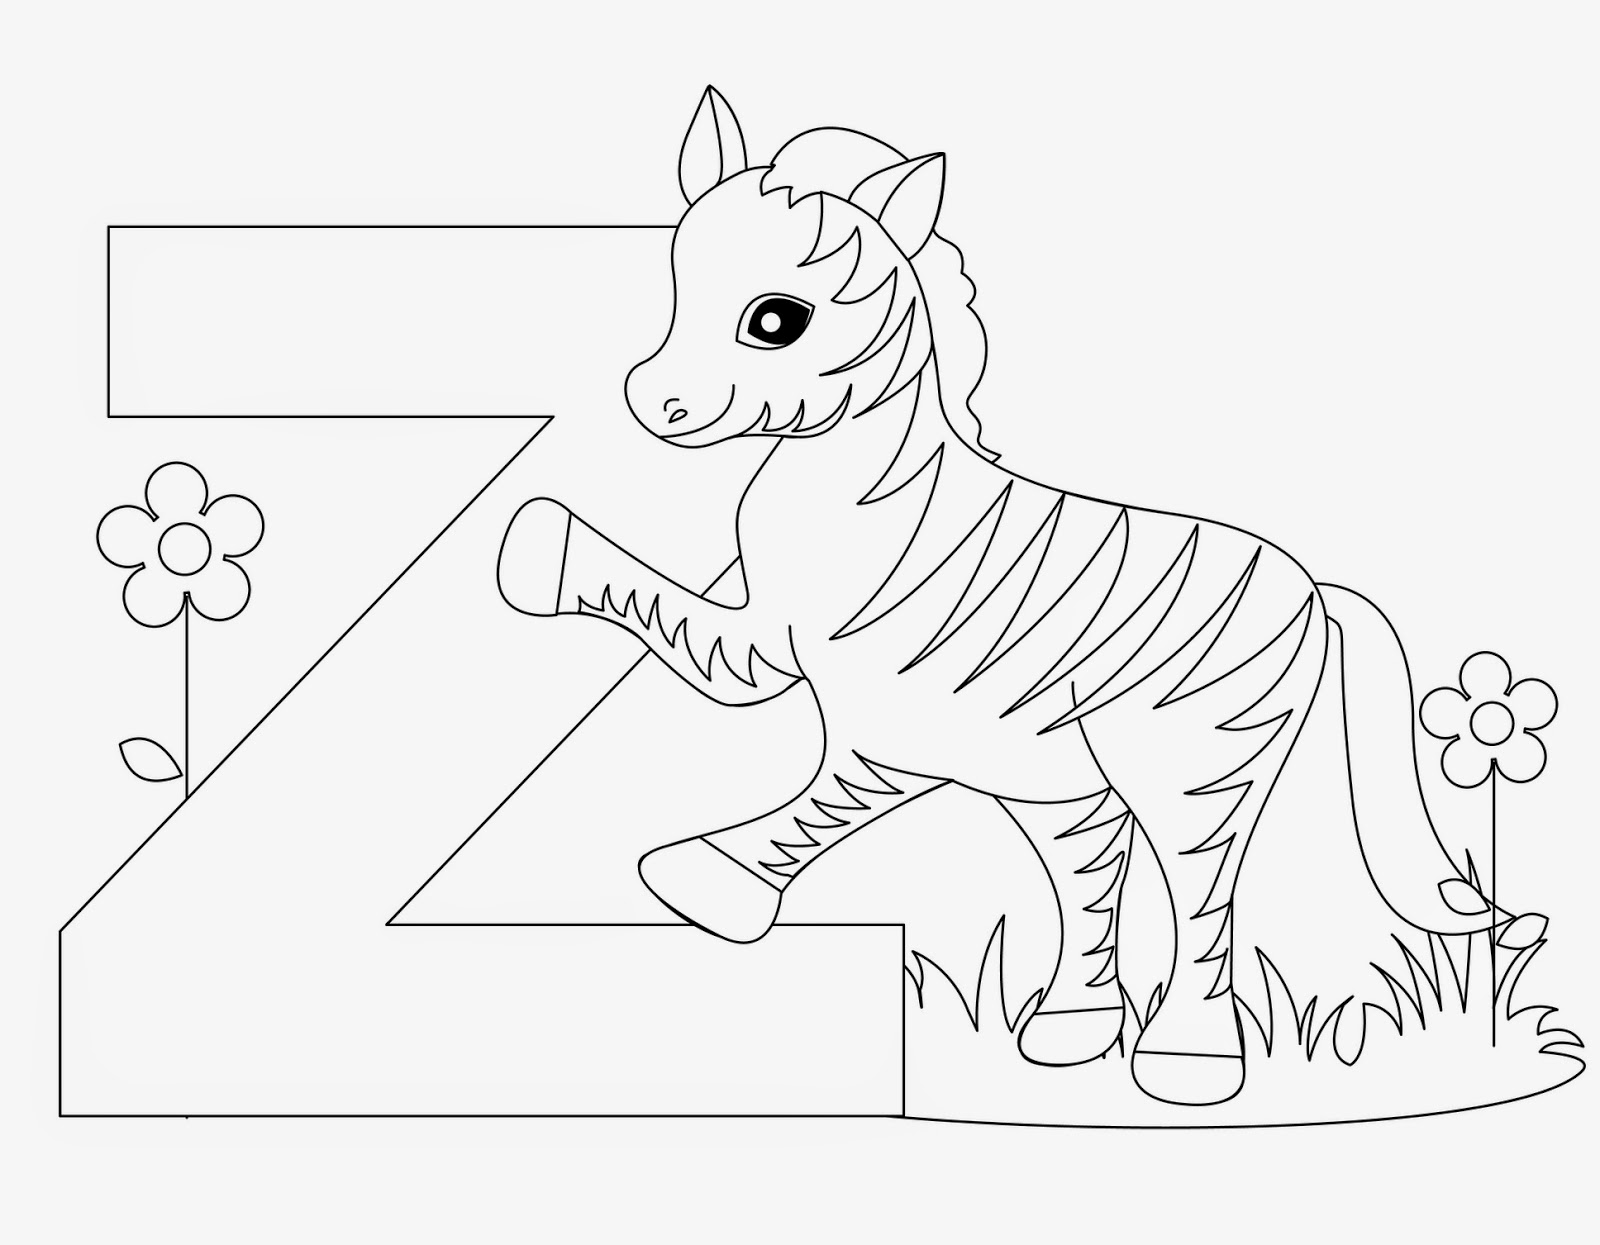 letter a coloring page free printable alphabet coloring pages for kids best page coloring letter a